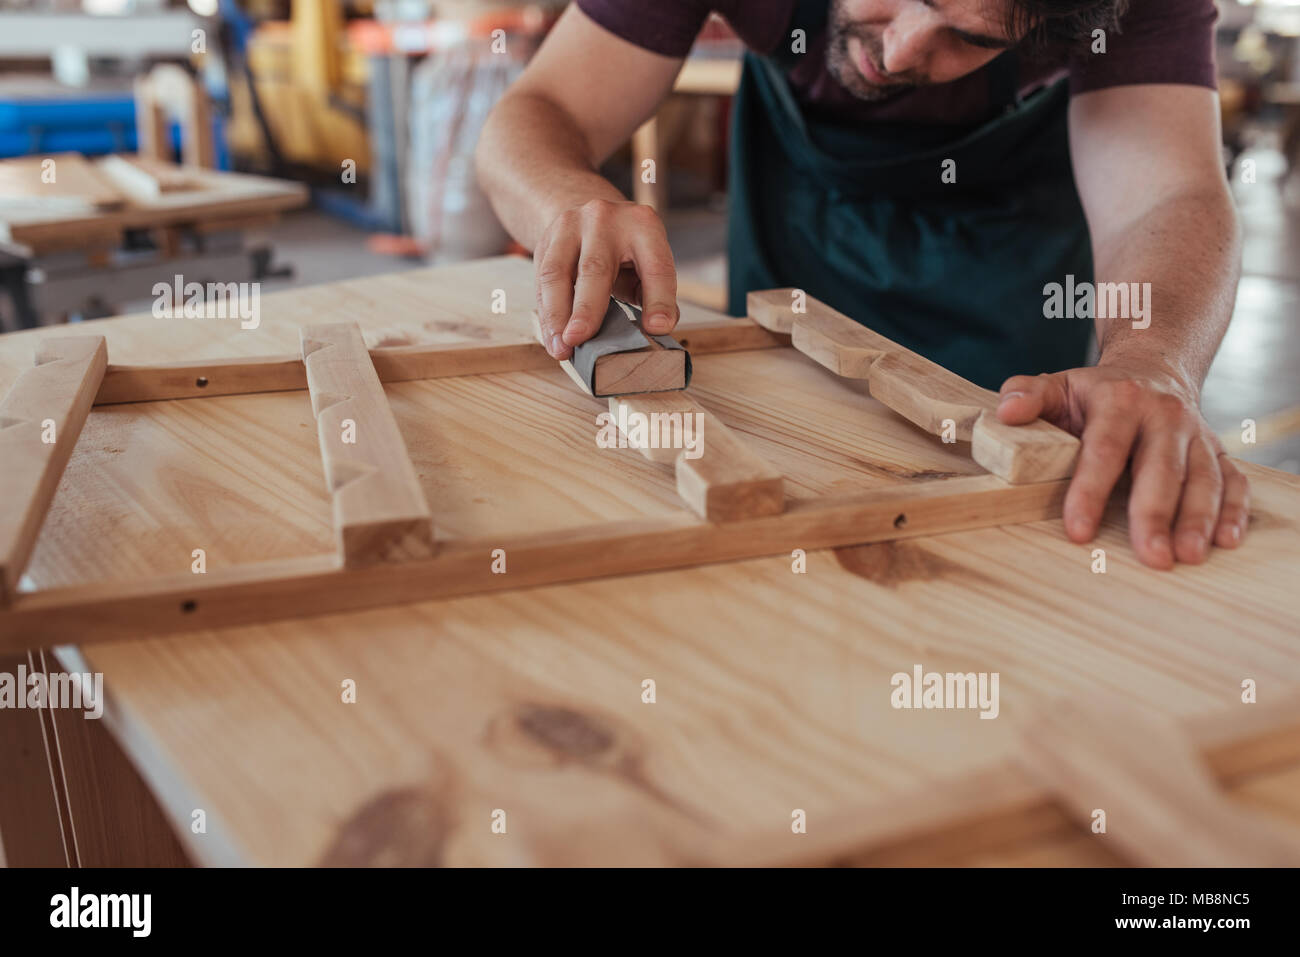 Craftsman skillfully sanding a piece of wood in his workshop - Stock Image